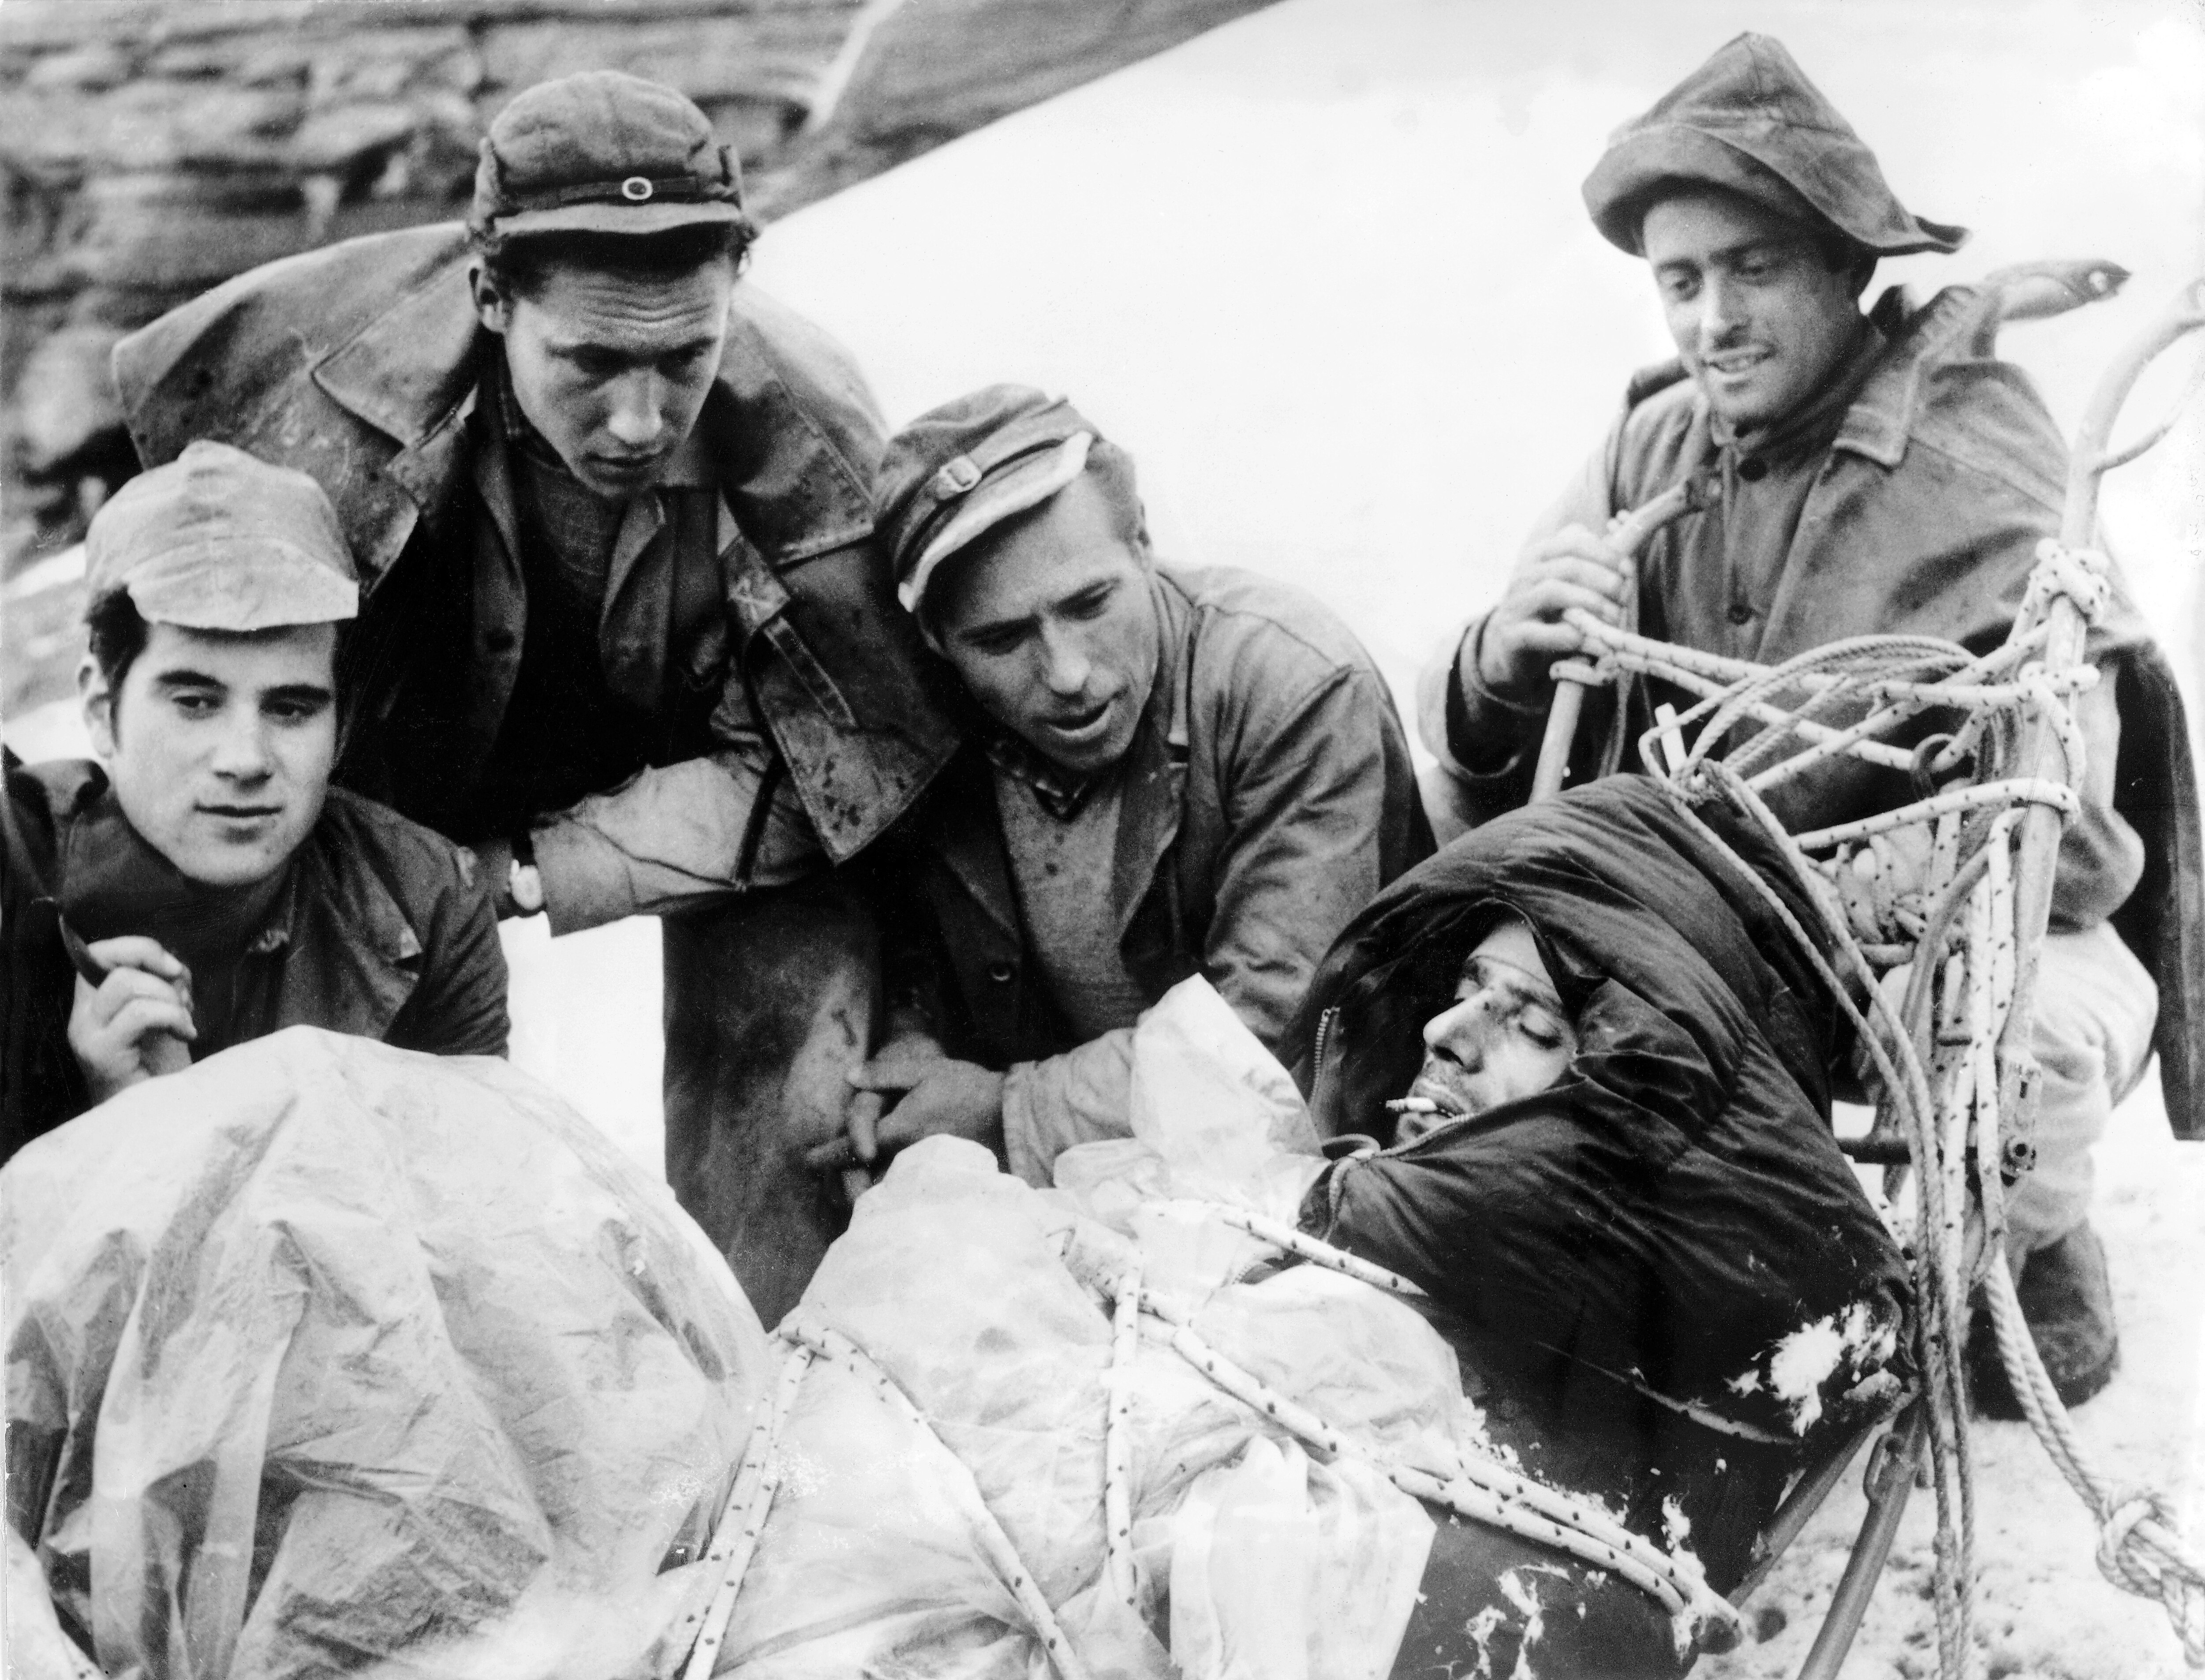 Italian construction workers employed by the Jungfrau Railway show their relief at the successful rescue of their compatriot.